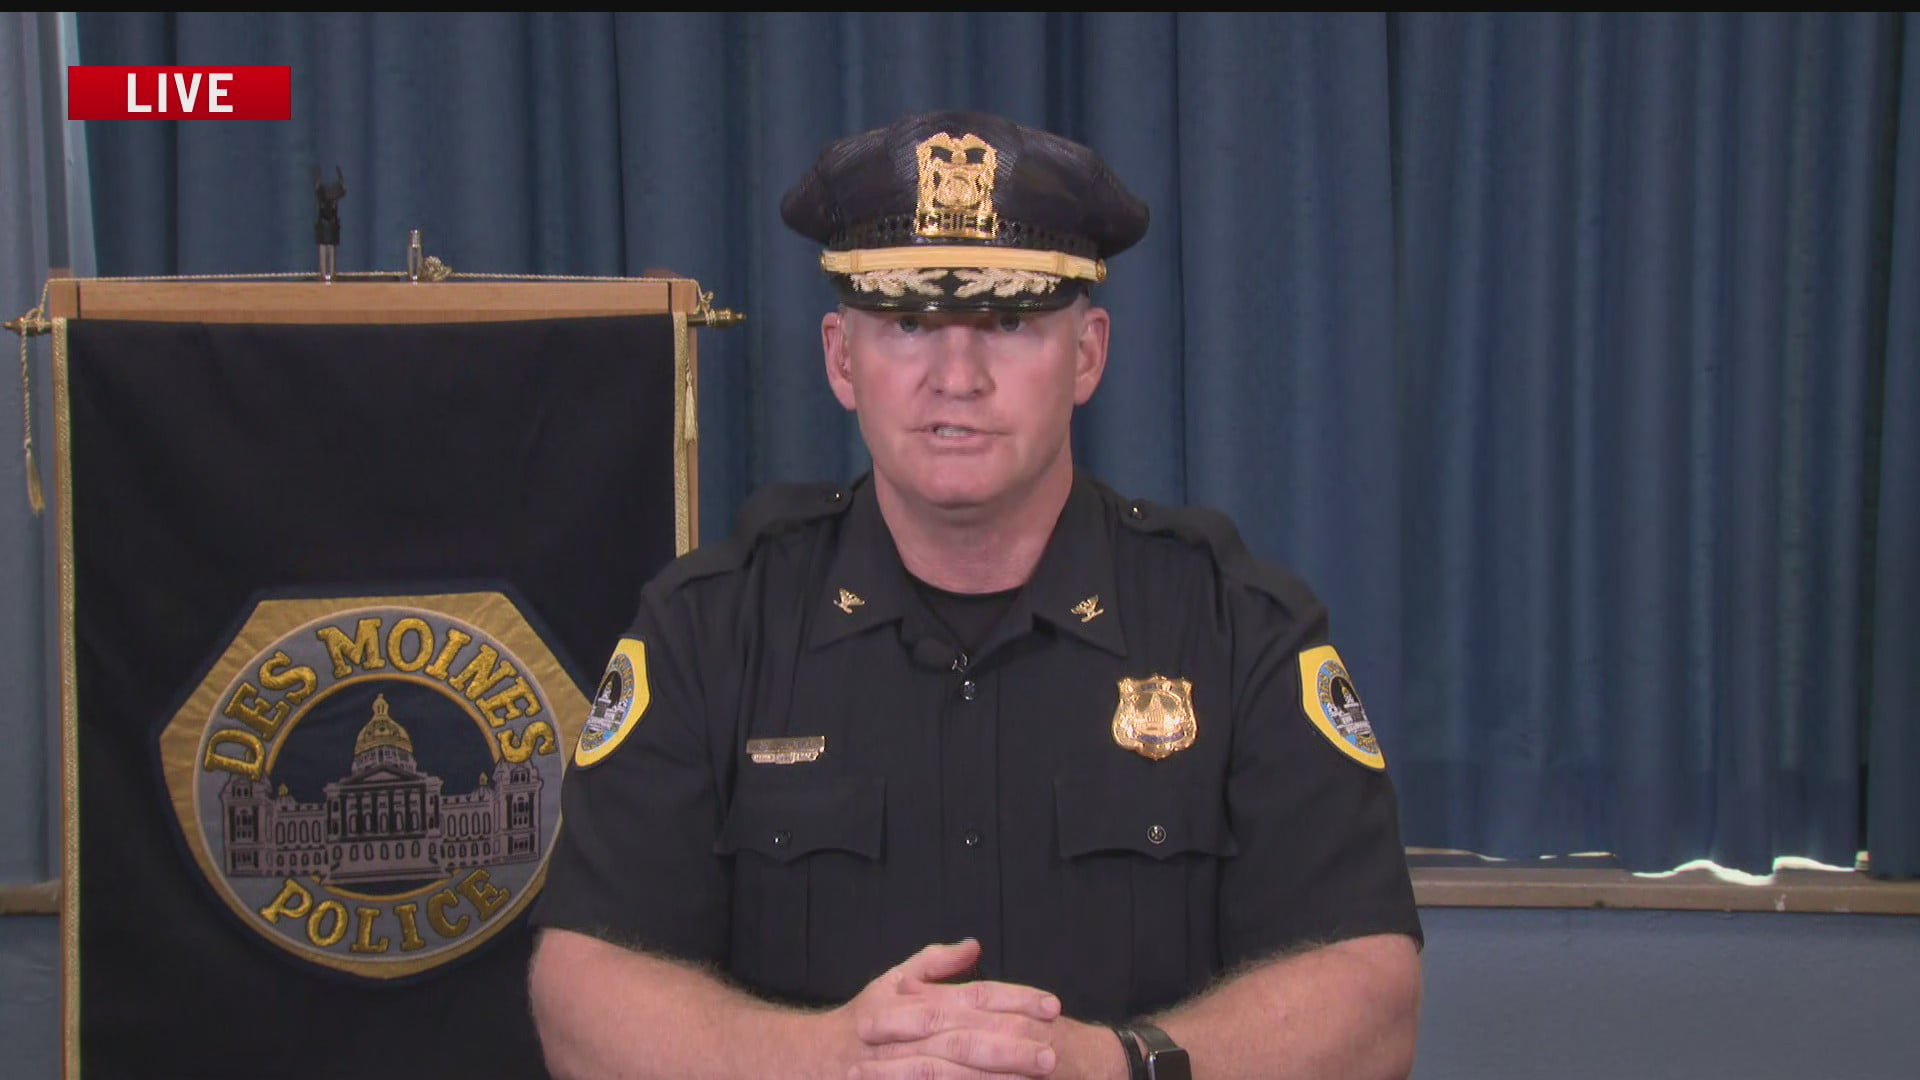 Des Moines Police Chief: Process to Review Complaints 'Works Very Well' 1